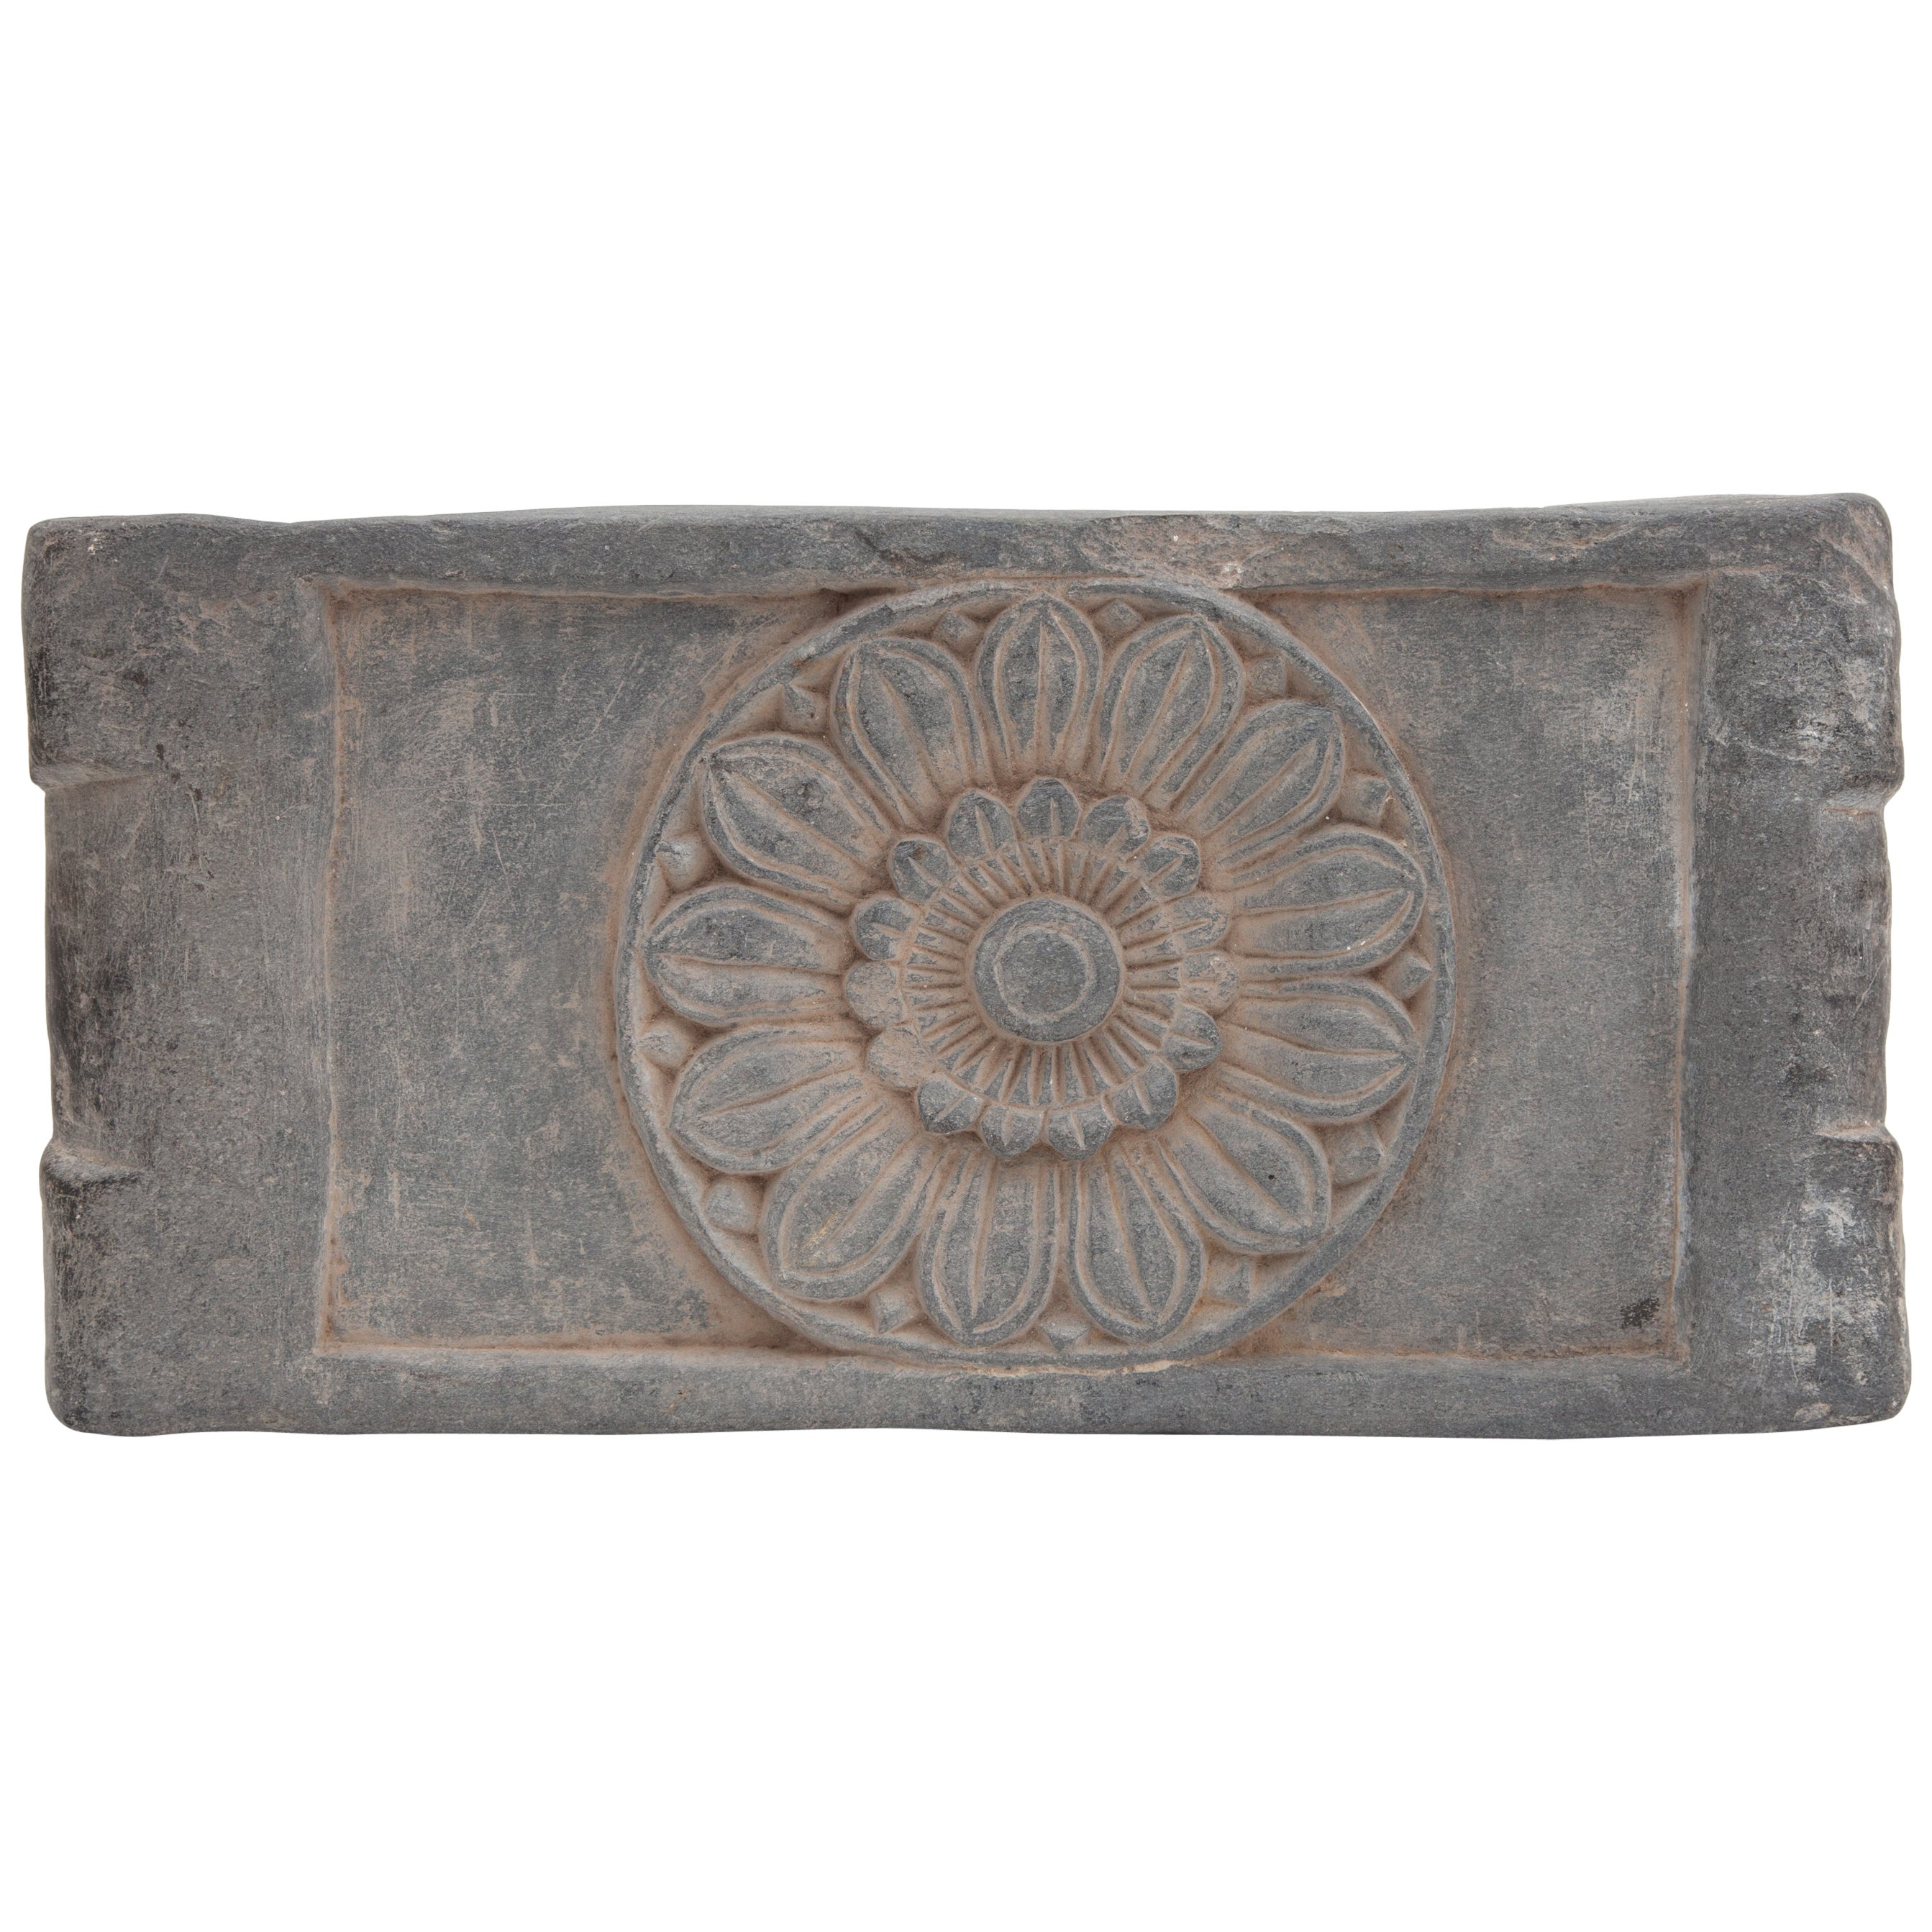 Ancient Buddhist Stone Tabletop Altar with a Lotus Flower